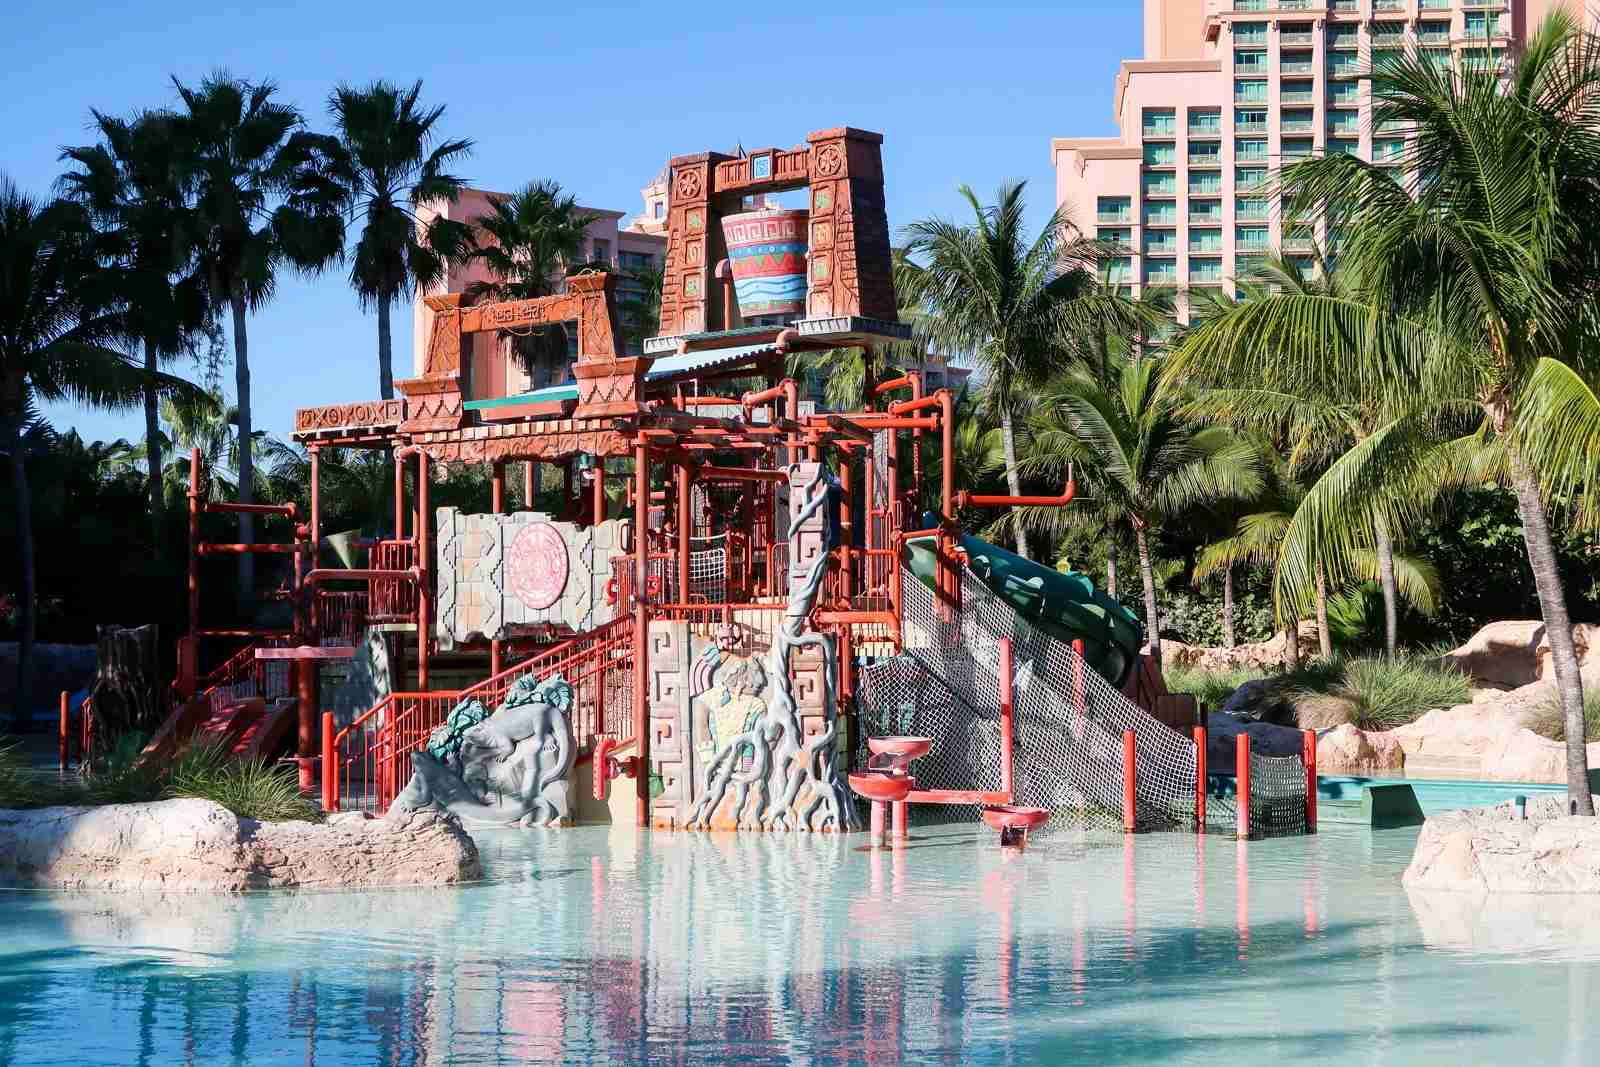 One of the sections at Aquaventure for young children.